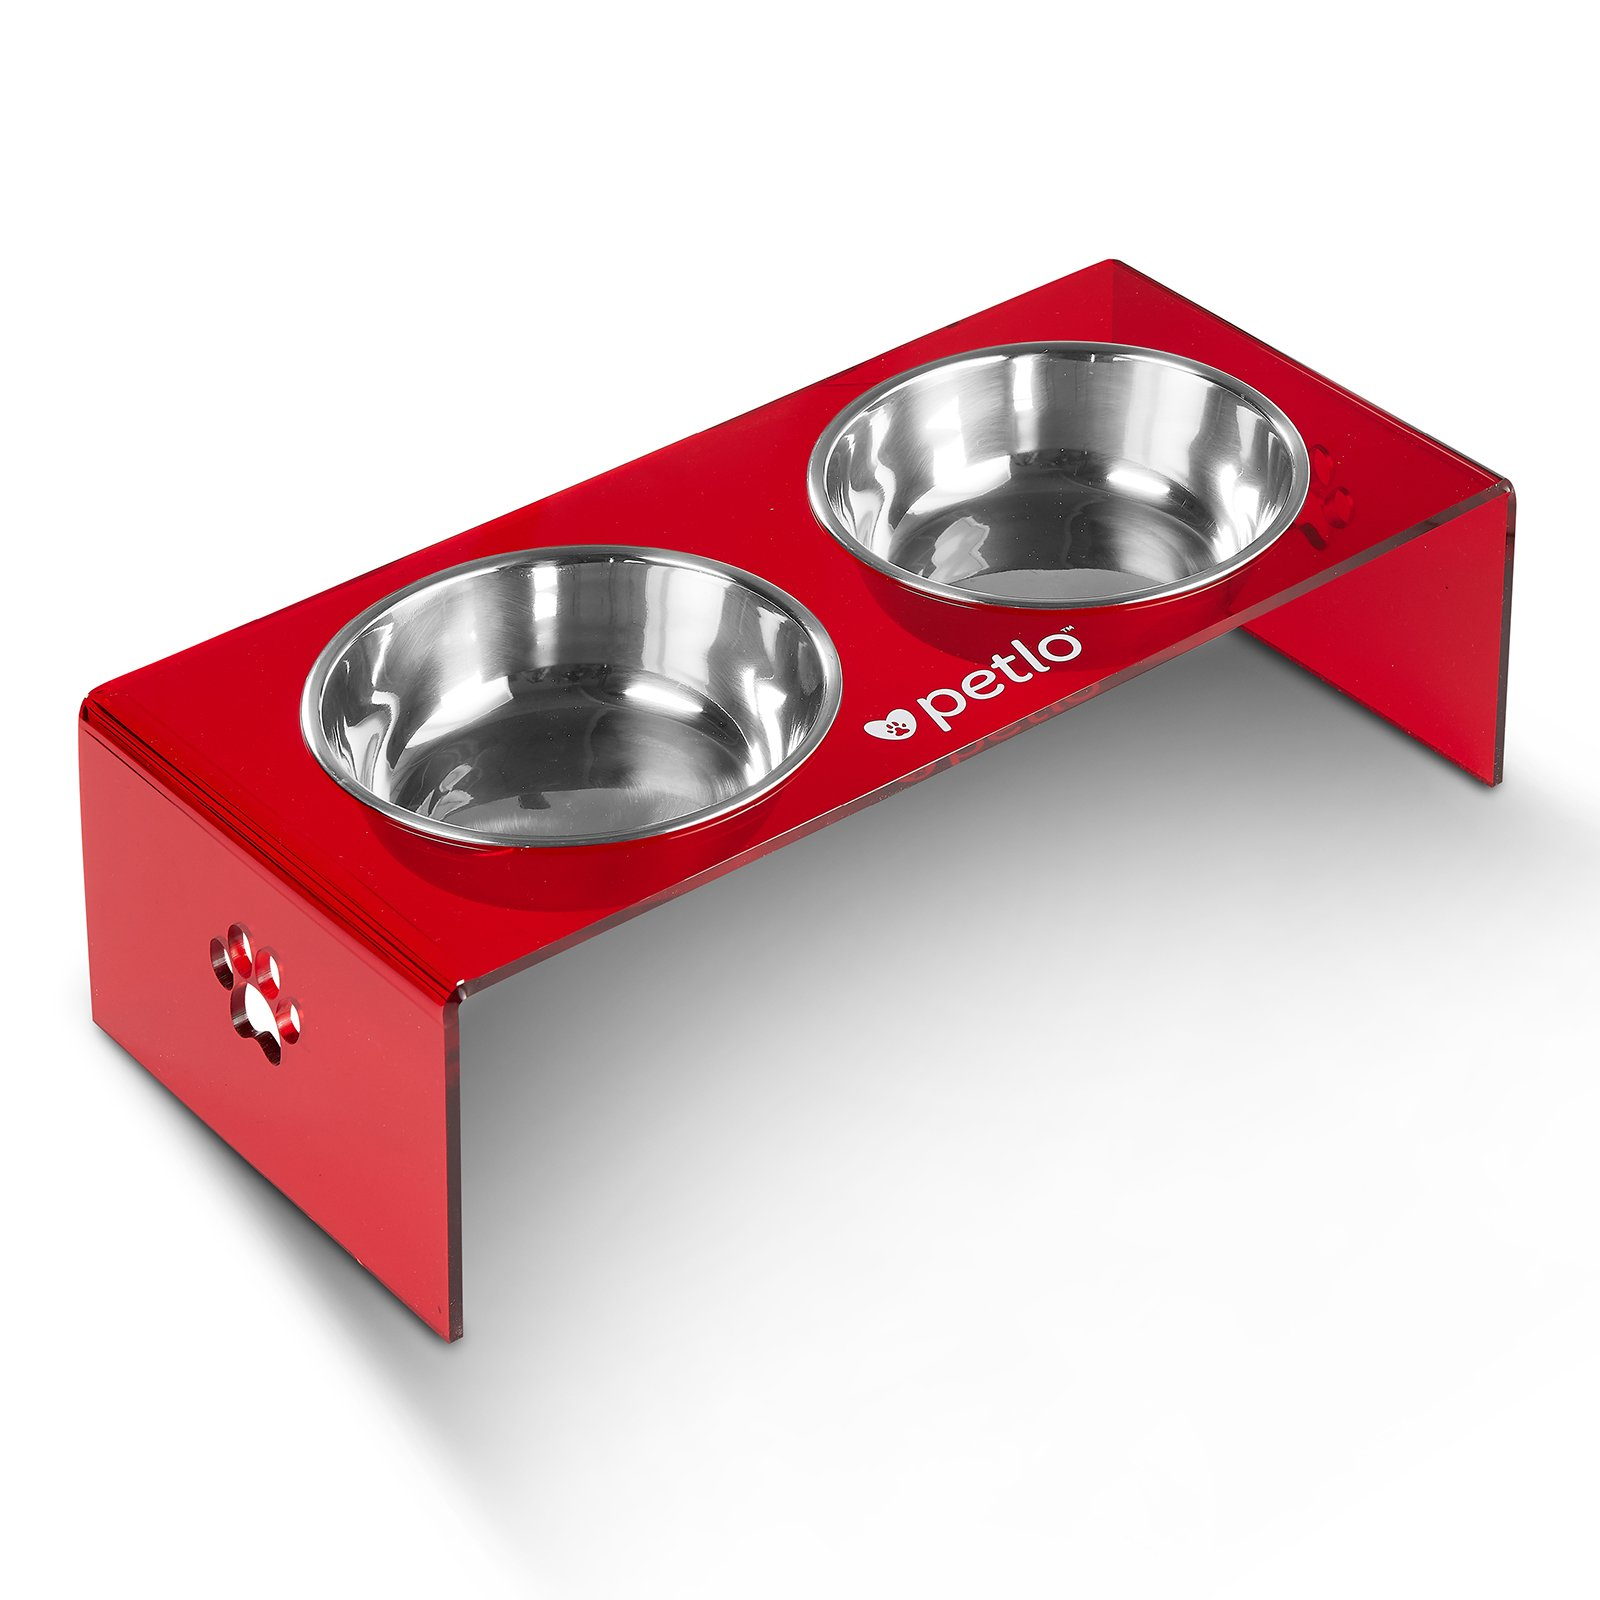 Petlo Raised Pet Feeder Bowls - Elevated Red Acrylic Feeding Stand with Two Stainless Steel Food and Water Bowls for Dogs and Cats by Petlo